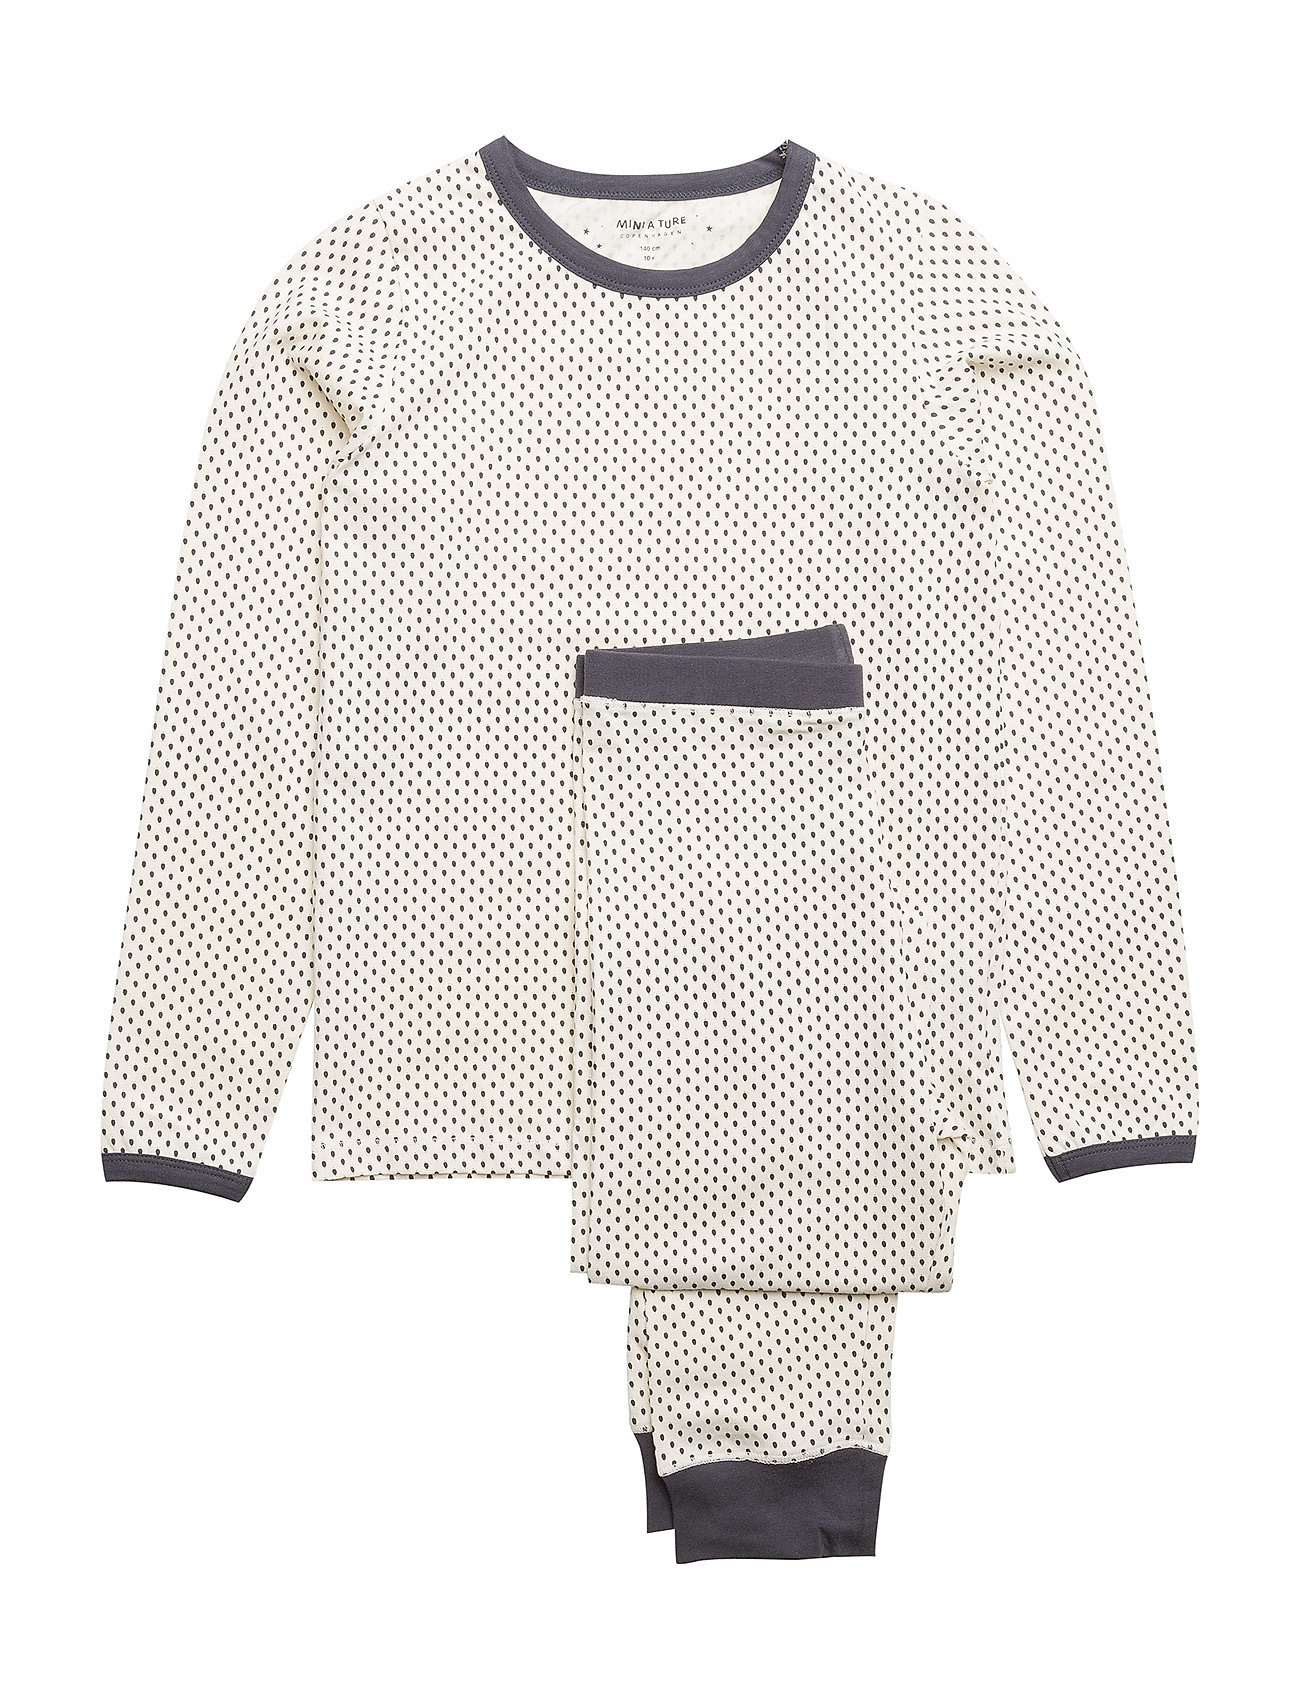 Mini A Ture Young Playwear, K